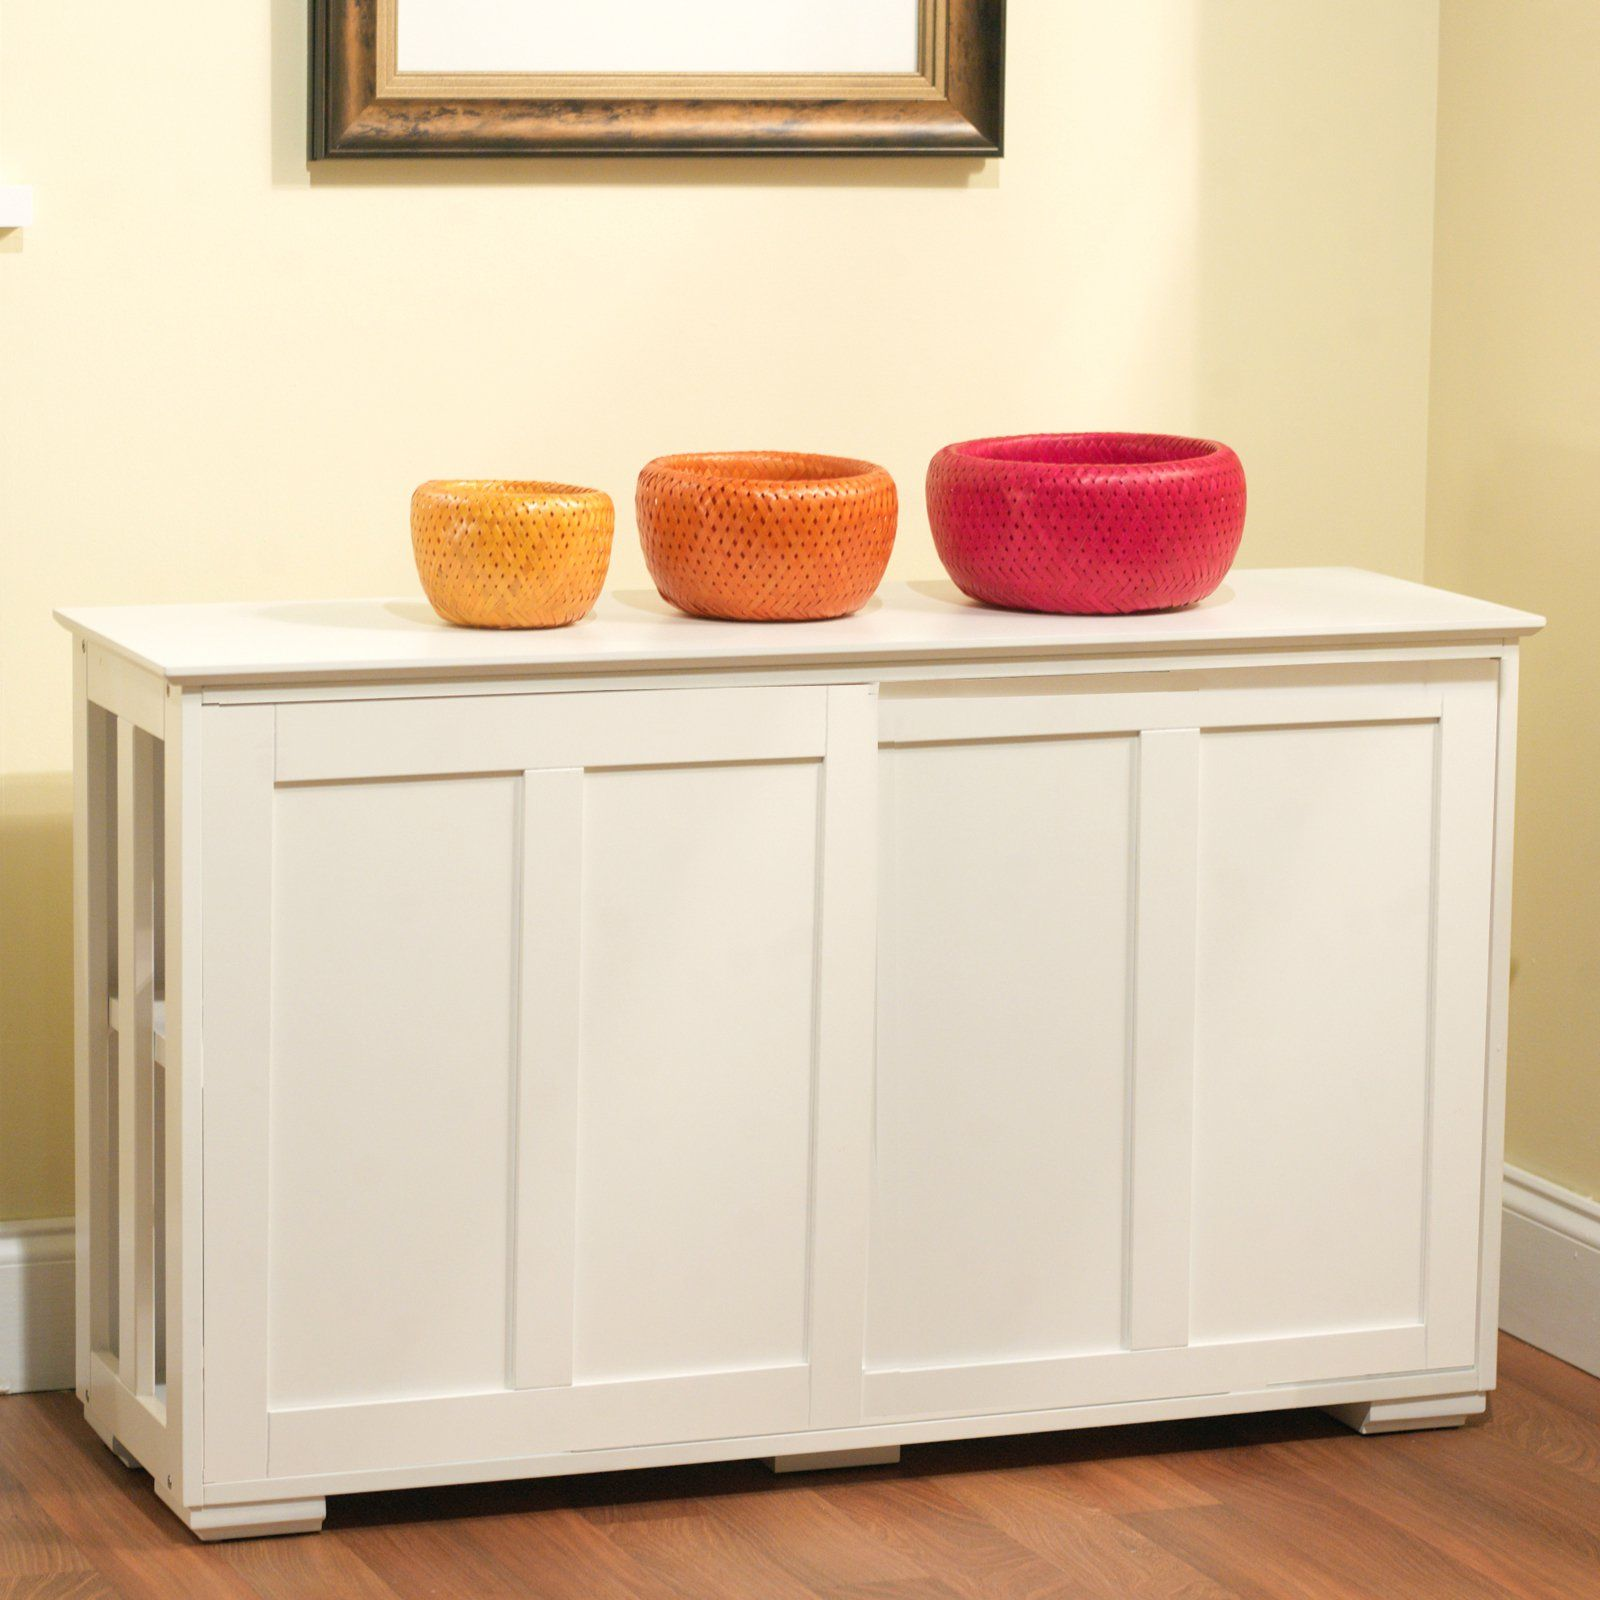 Target Marketing Systems Pacific Stackable Cabinet Www Hayneedle Com Refacing Kitchen Cabinets Kitchen Cabinet Storage Refacing Kitchen Cabinets Cost